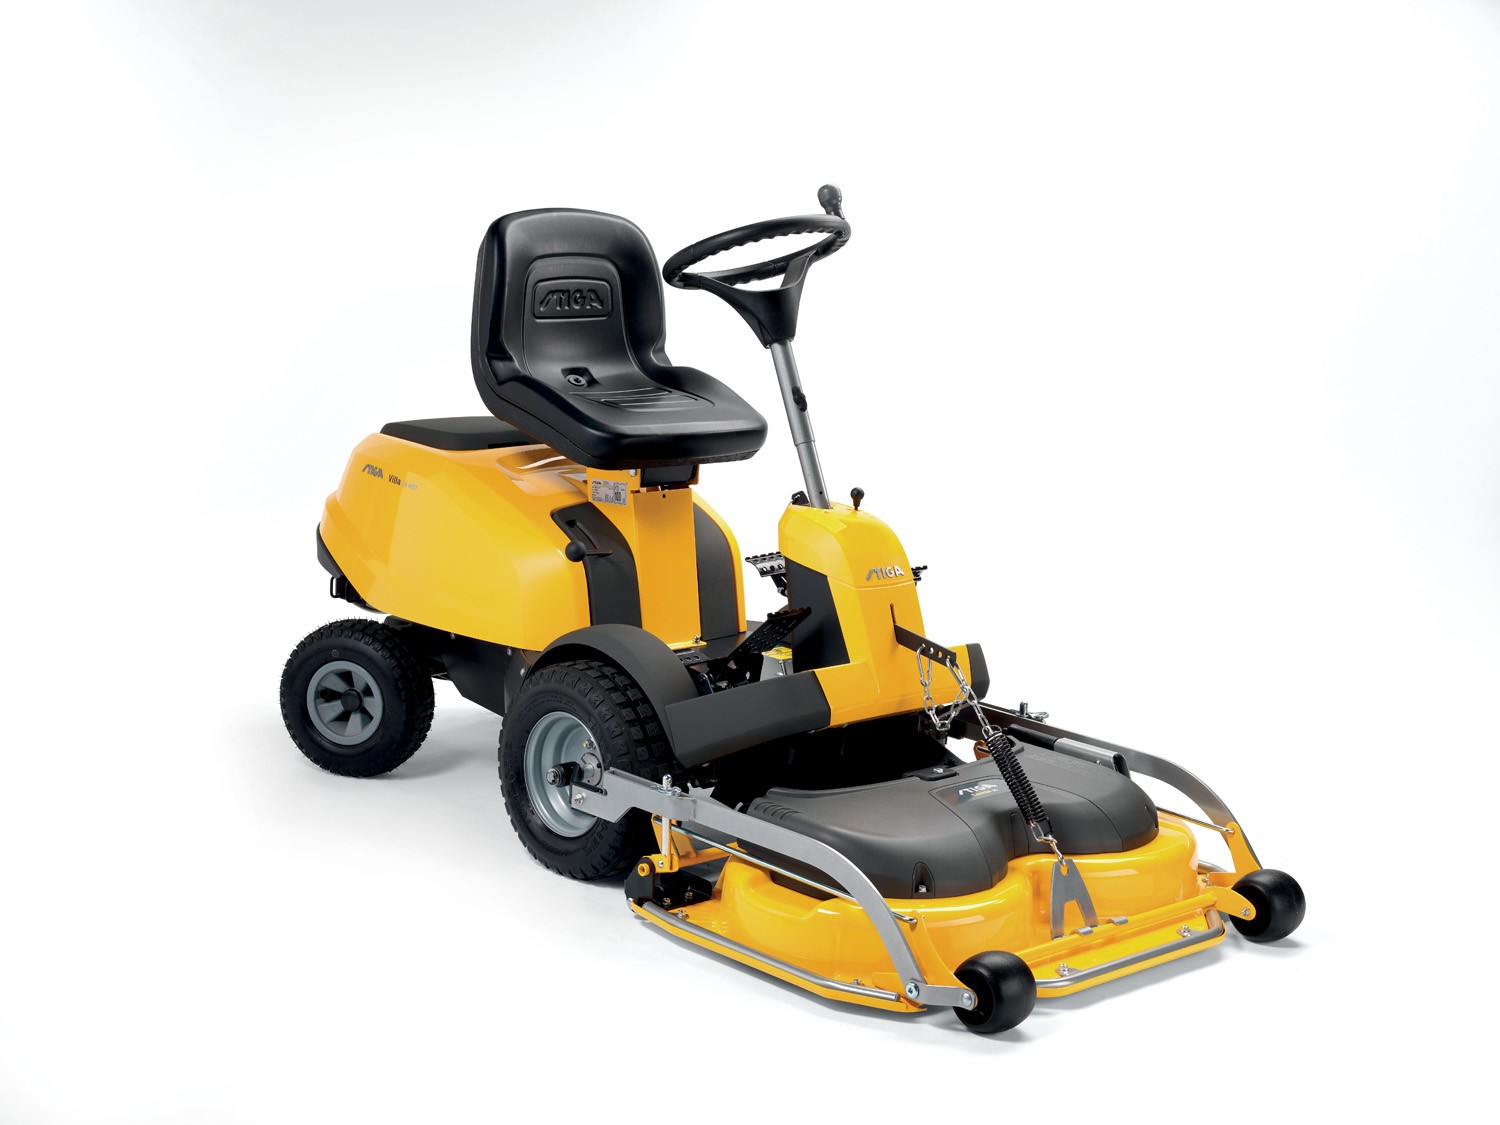 Stiga Villa 14 HST Mulching Ride On Lawnmower